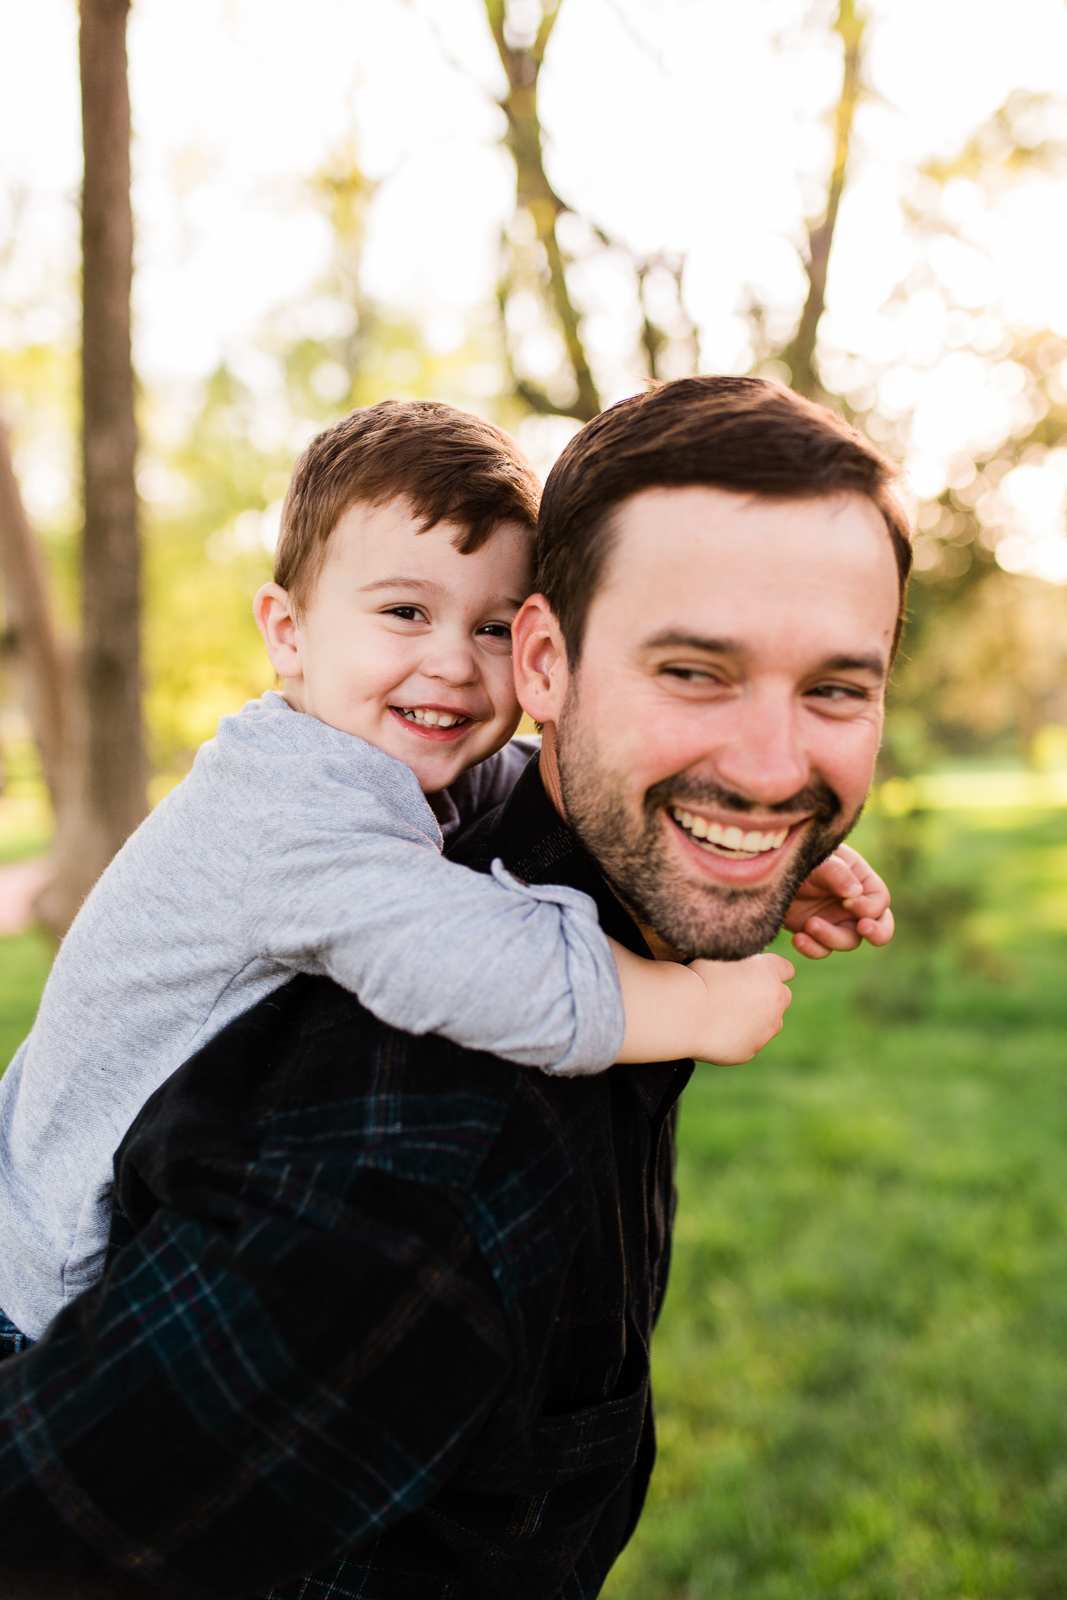 Father gives his son a piggyback ride in the park, Kansas City family photographer, Rebecca Clair Photography